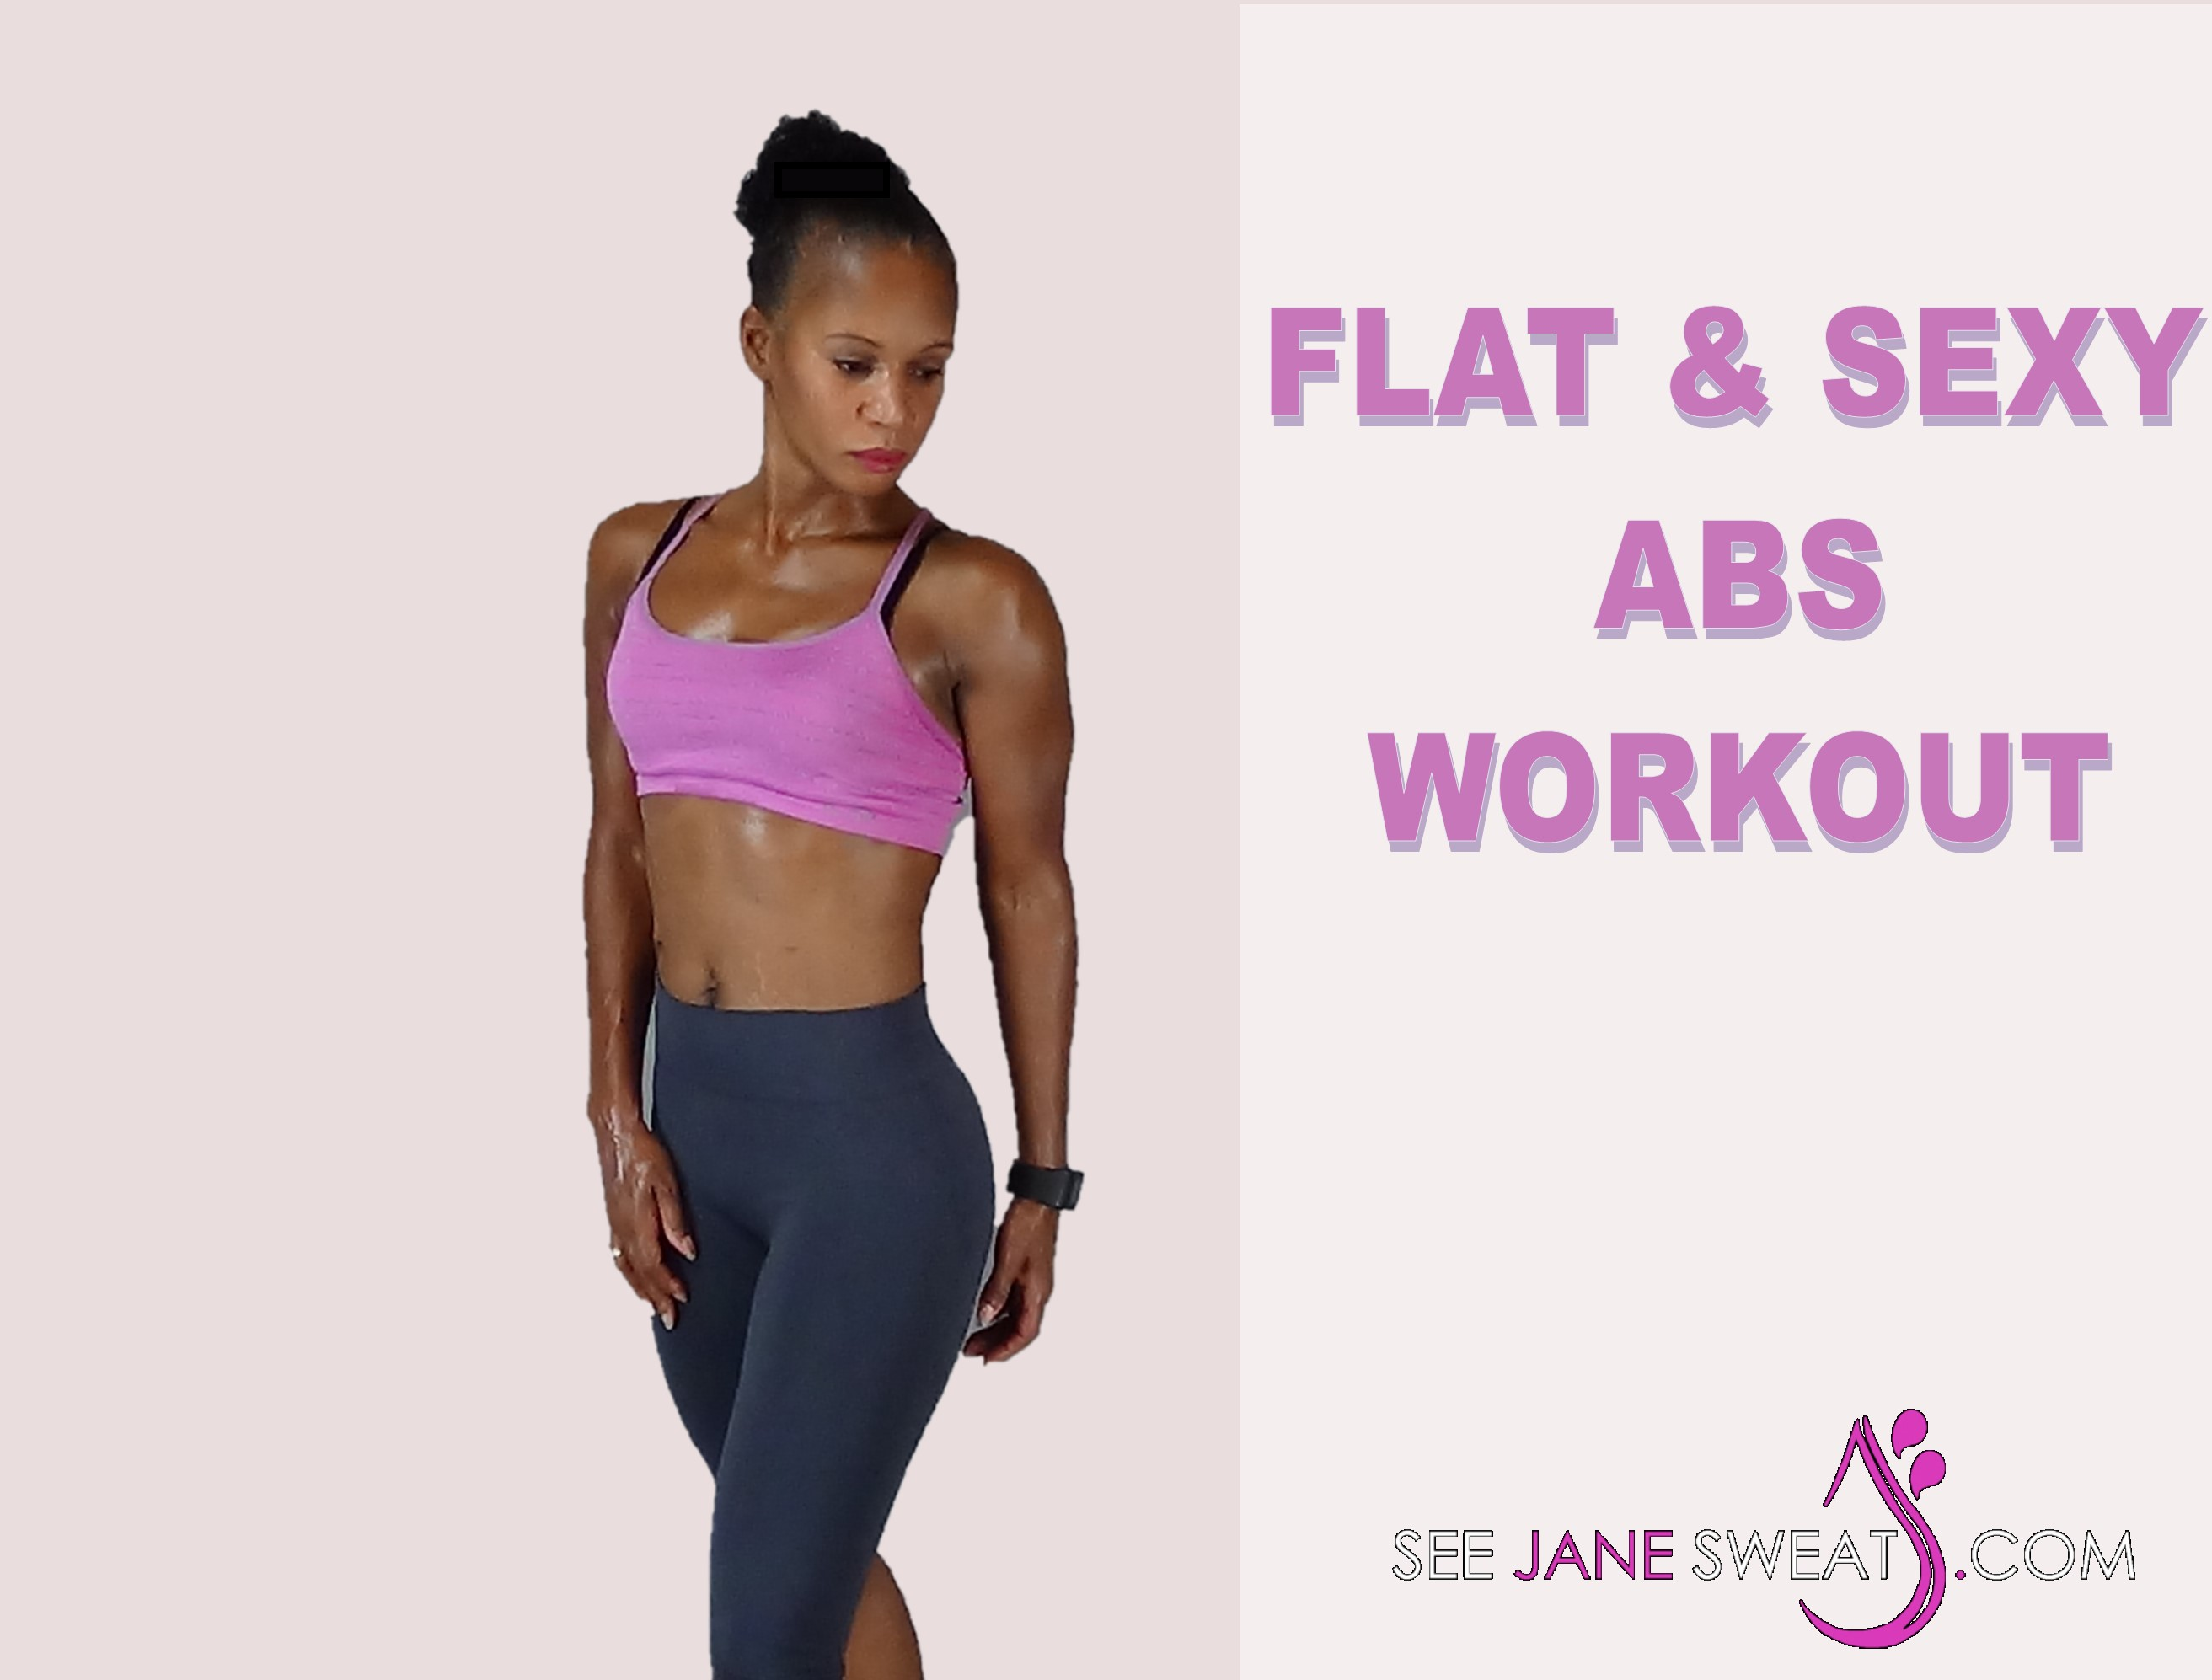 Flat & Sexy Abs Workout